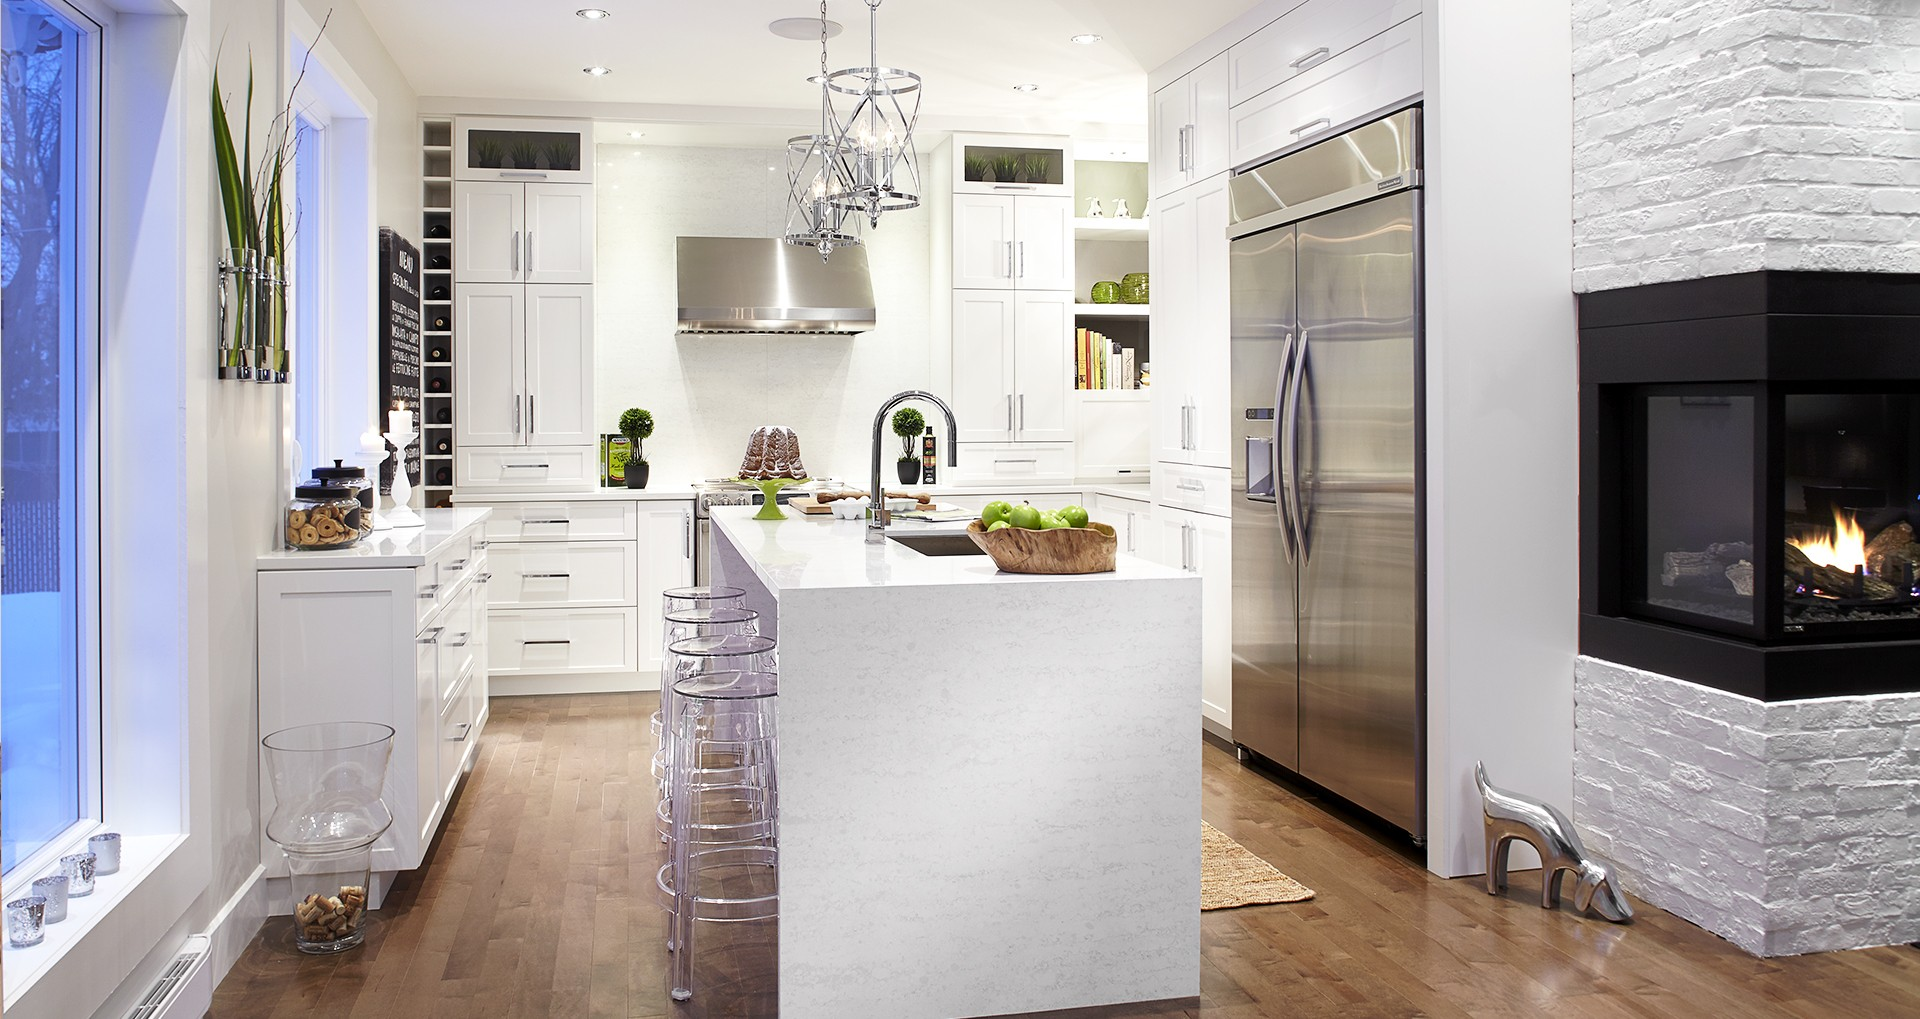 Bathroom kitchen cabinets custom furniture counters for Cuisine laurier